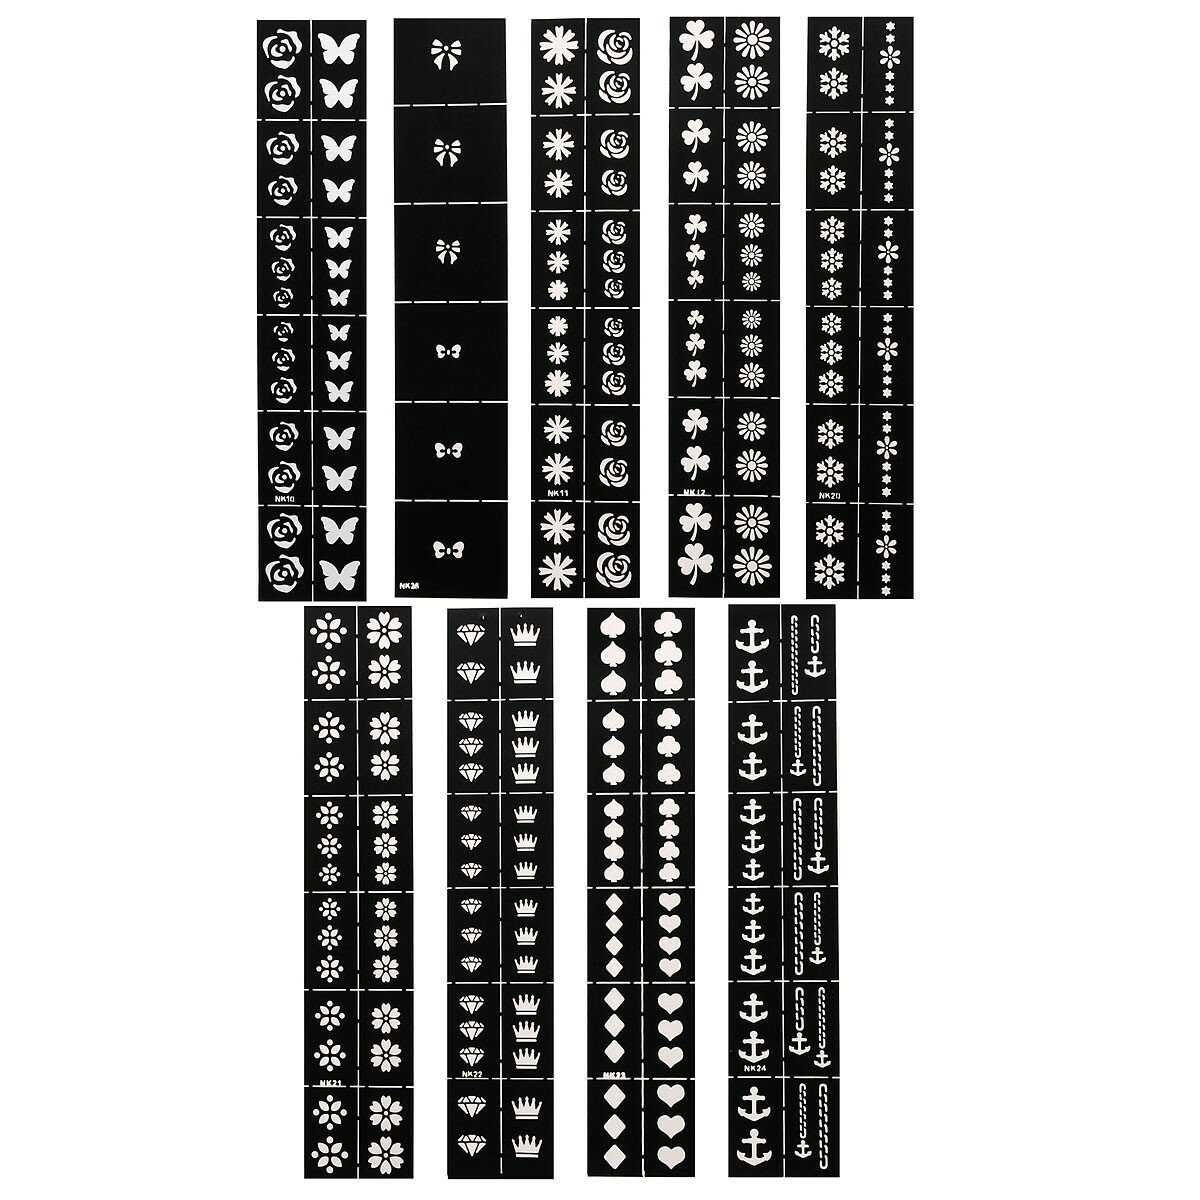 9 Styles Hollow Nail Art Designs Stickers Decoration Stamping Patterns Manicure Tool